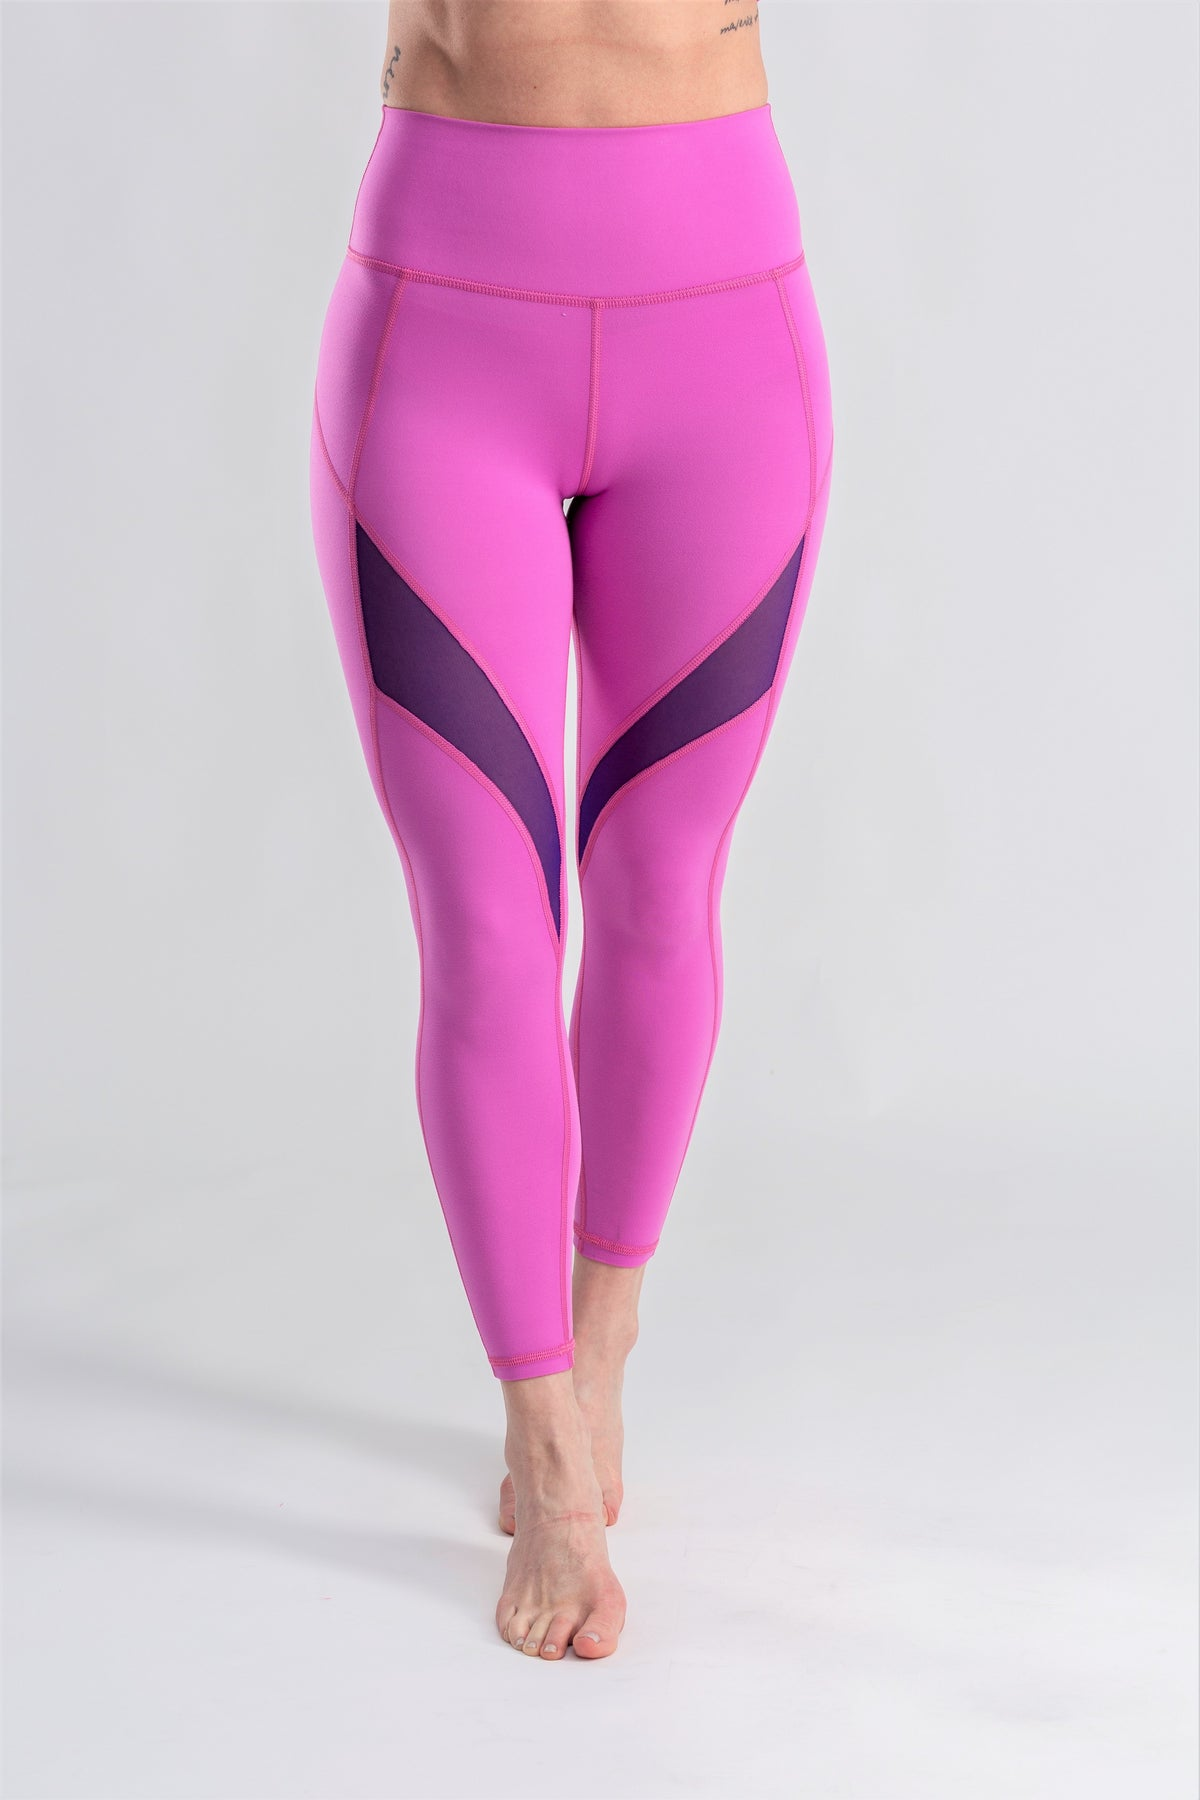 Pink and purple mesh leggings